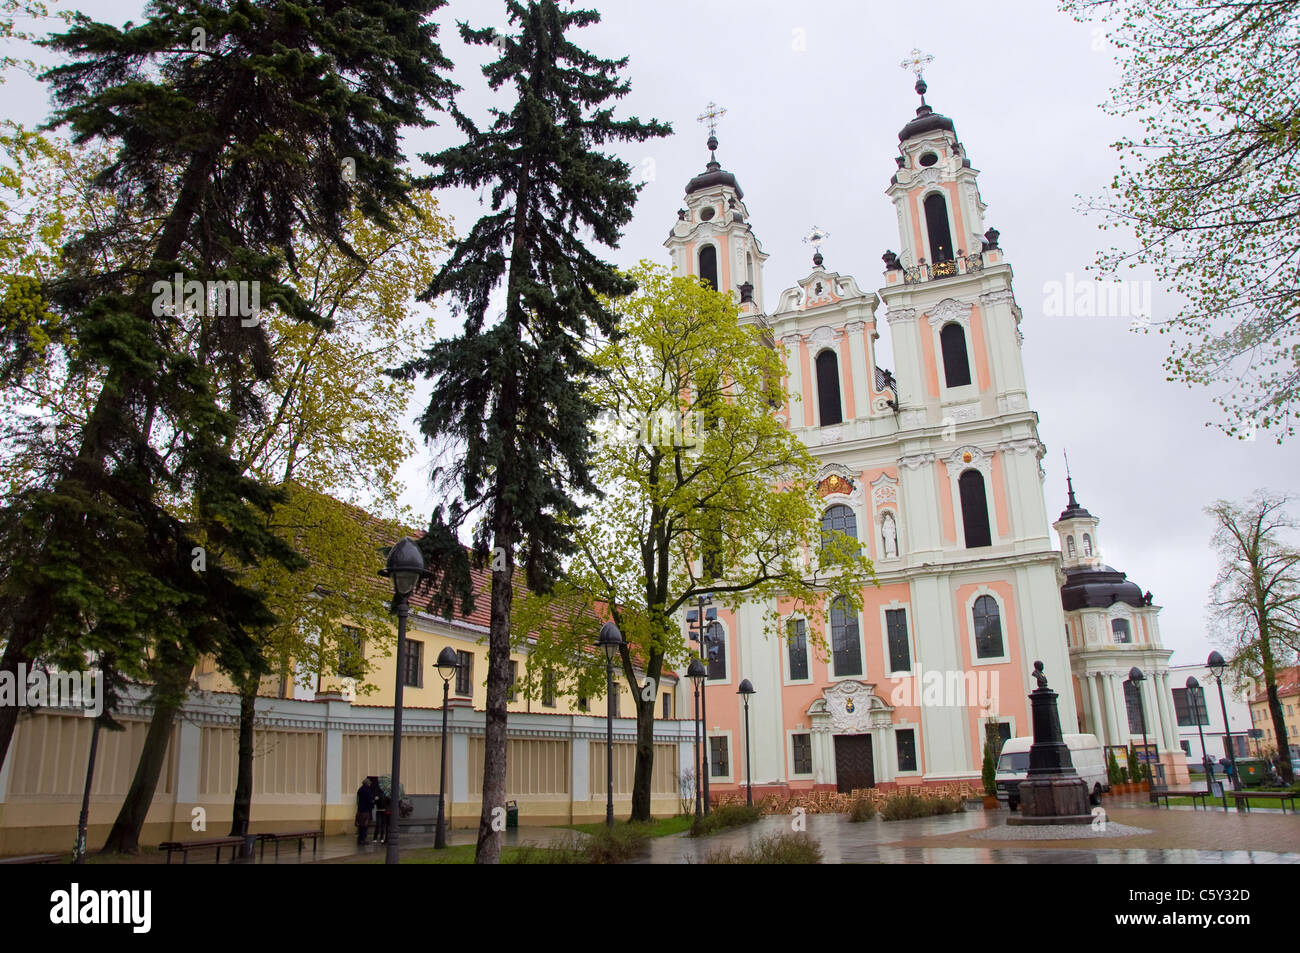 St. Catherine's Church, Vilnius, Lithuania - Stock Image